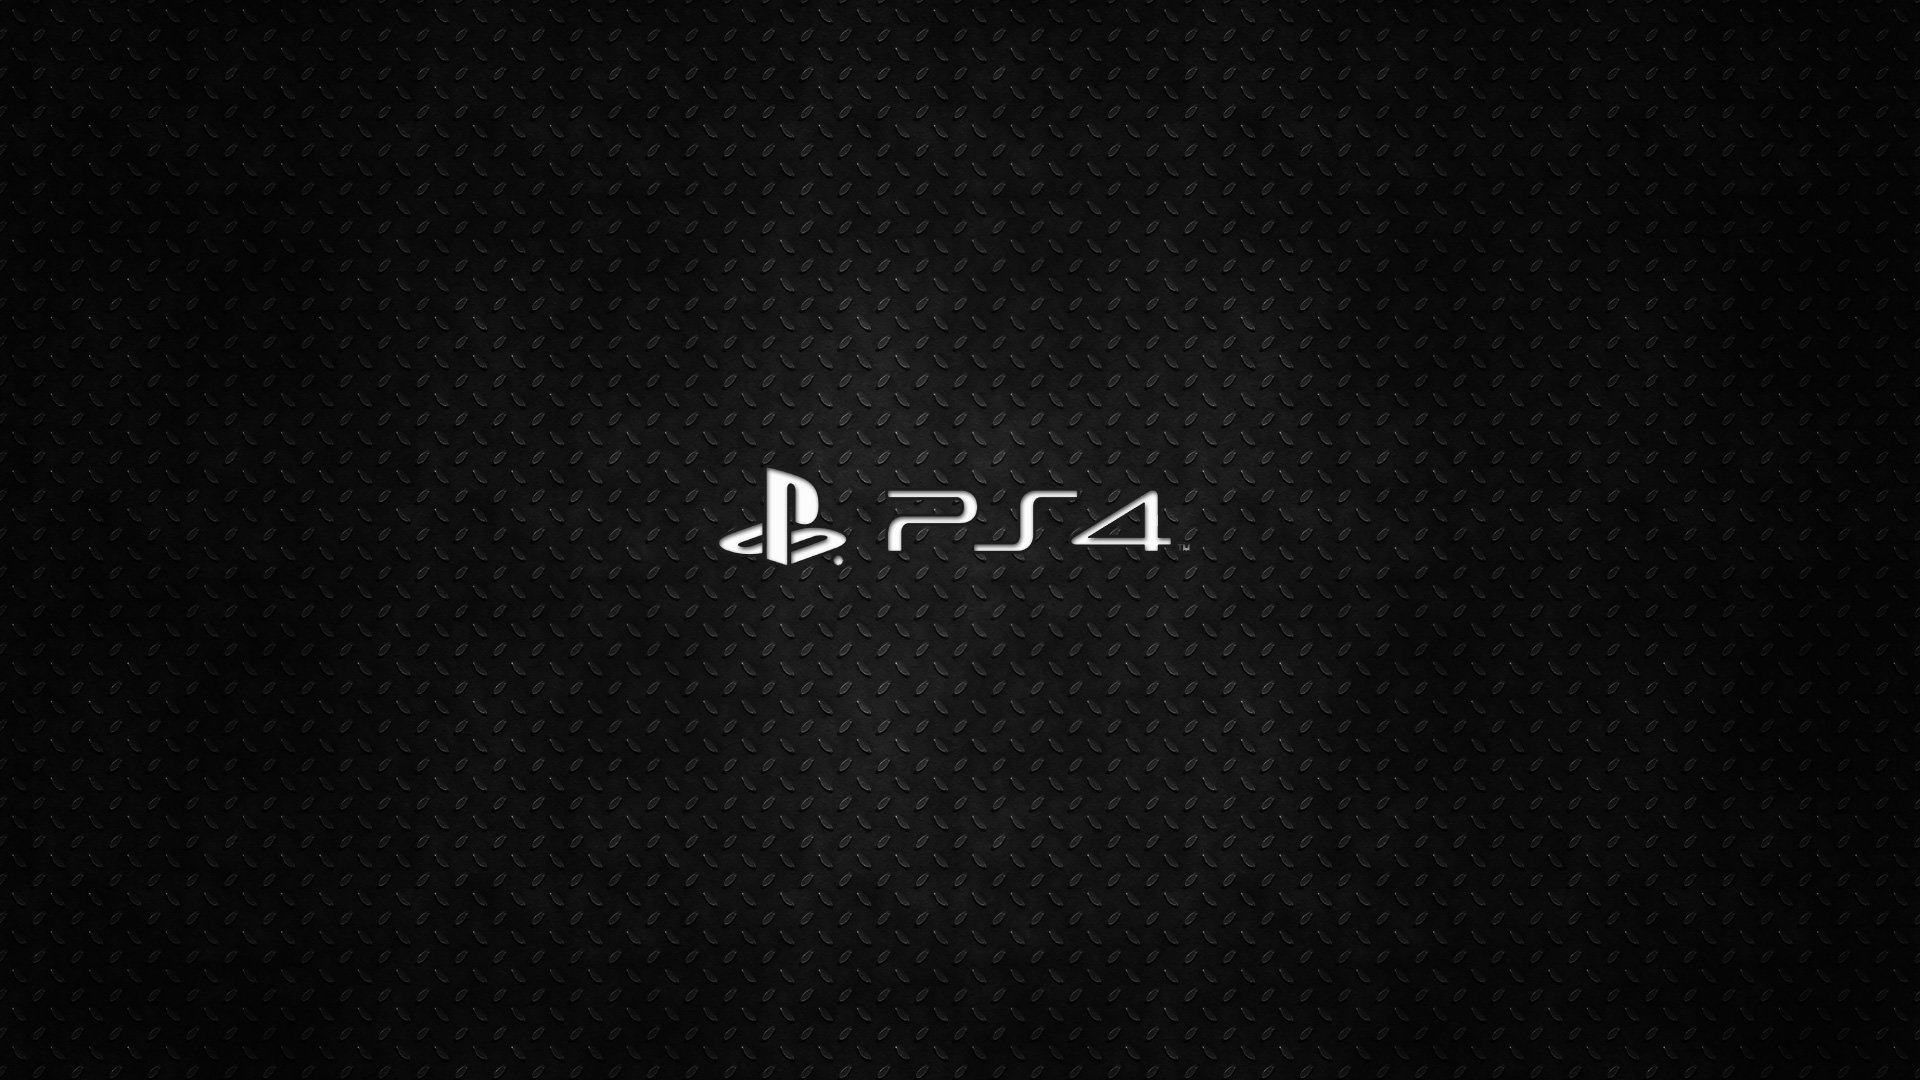 4k Ps4 Wallpapers Top Free 4k Ps4 Backgrounds